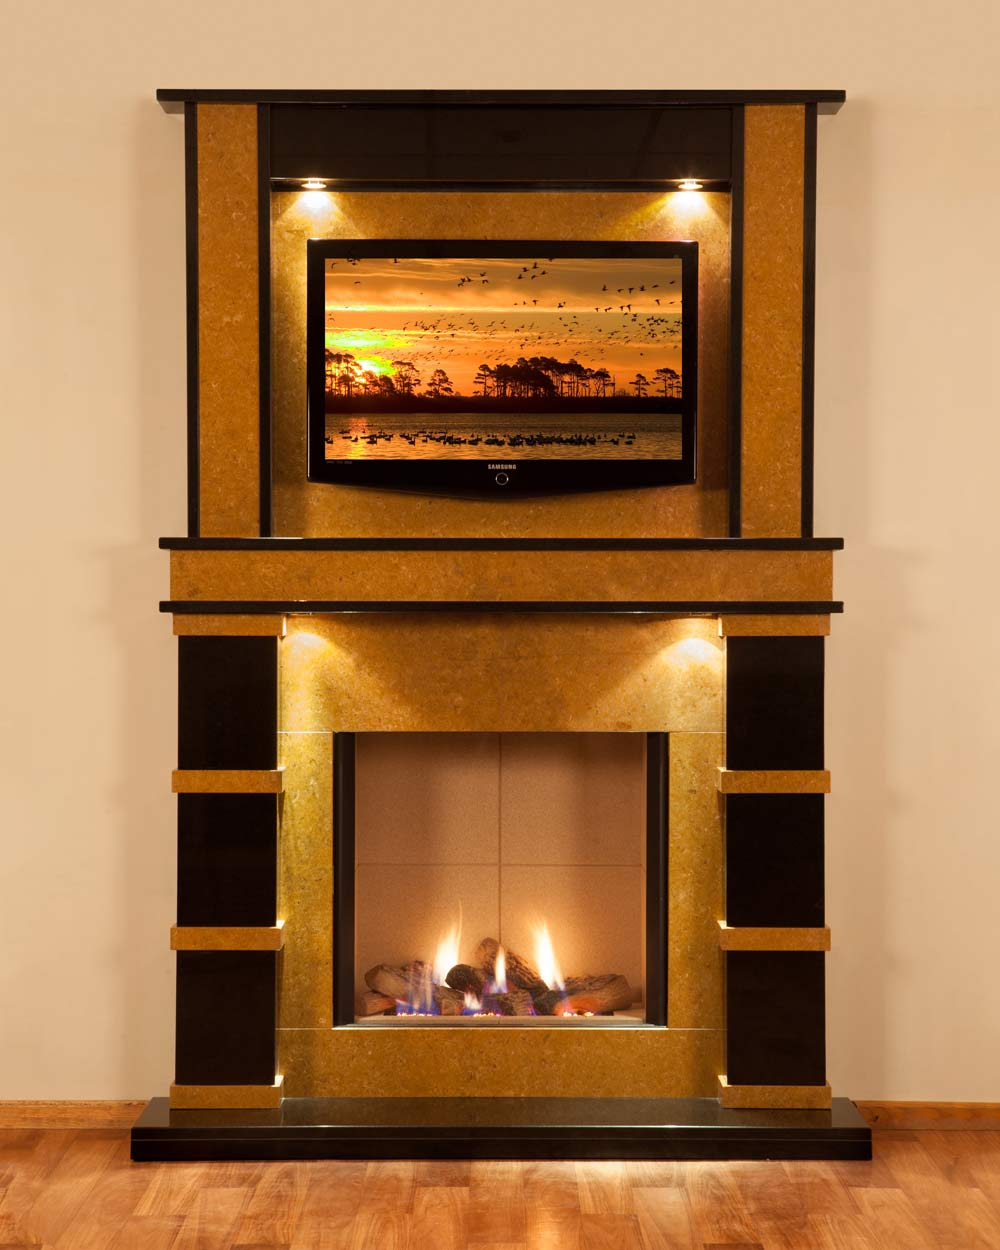 unique-design-En-Vogue-fireplace-surround